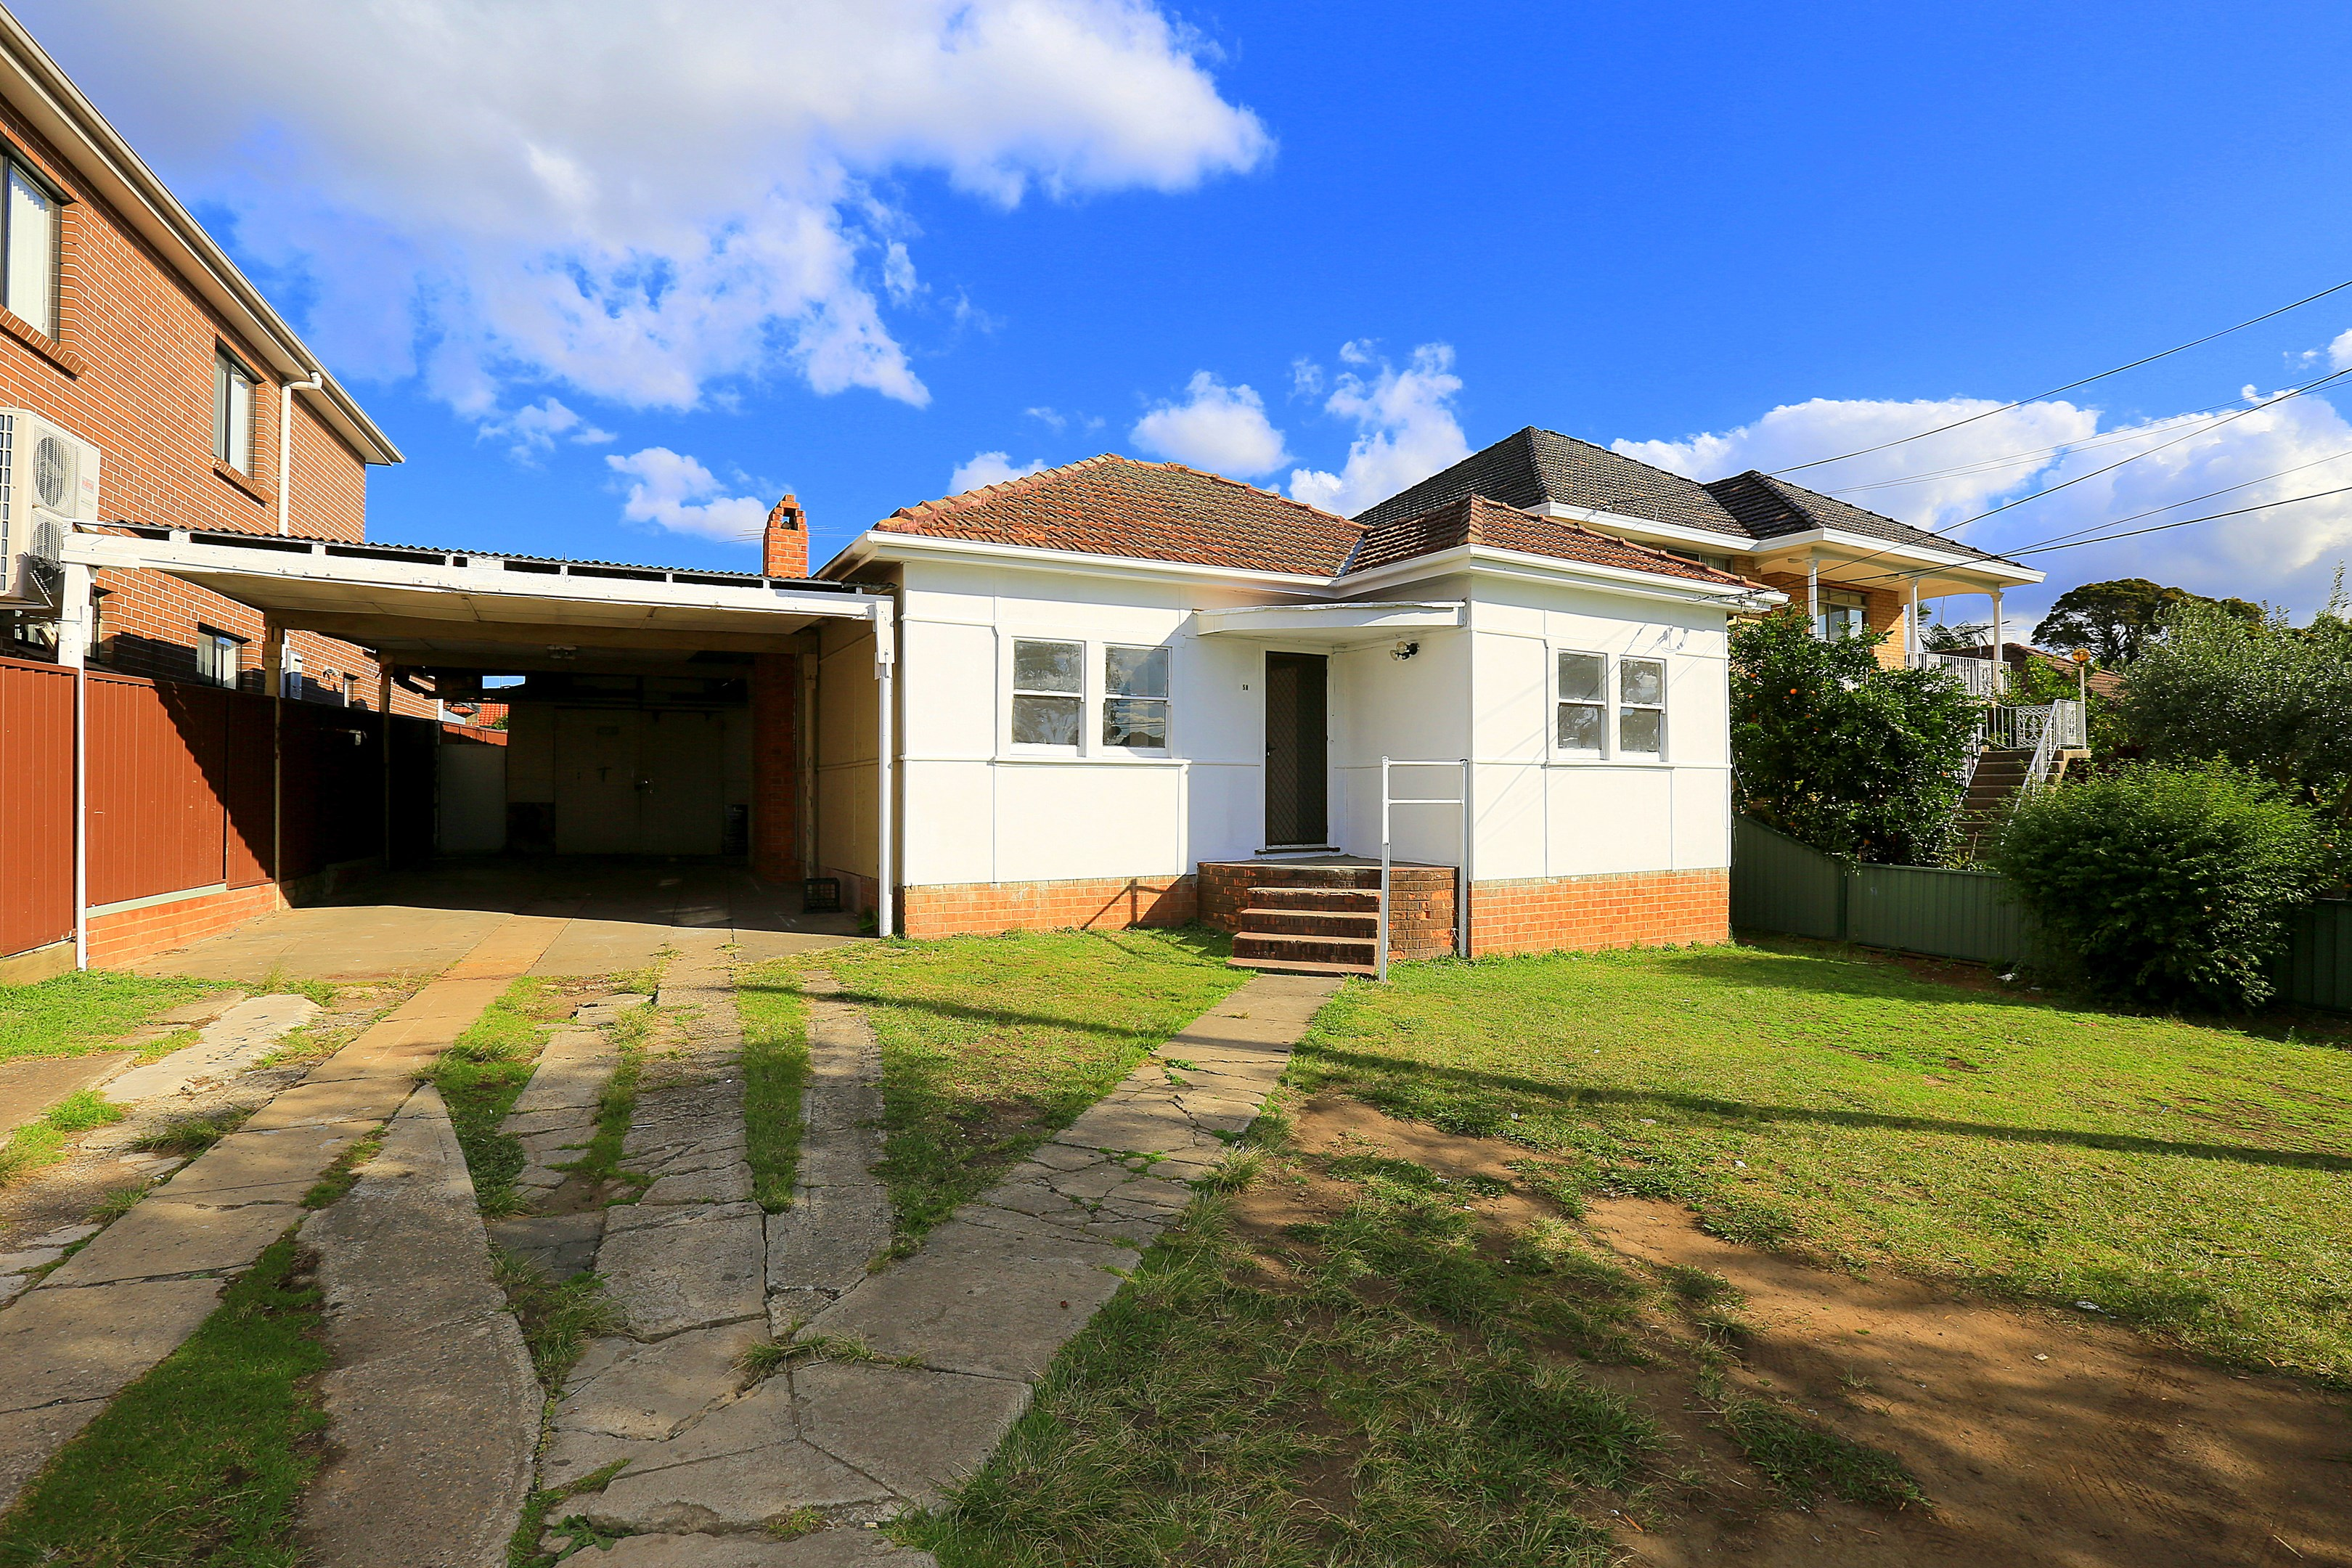 58 High Street Bankstown Nsw 2200 House For Rent 480